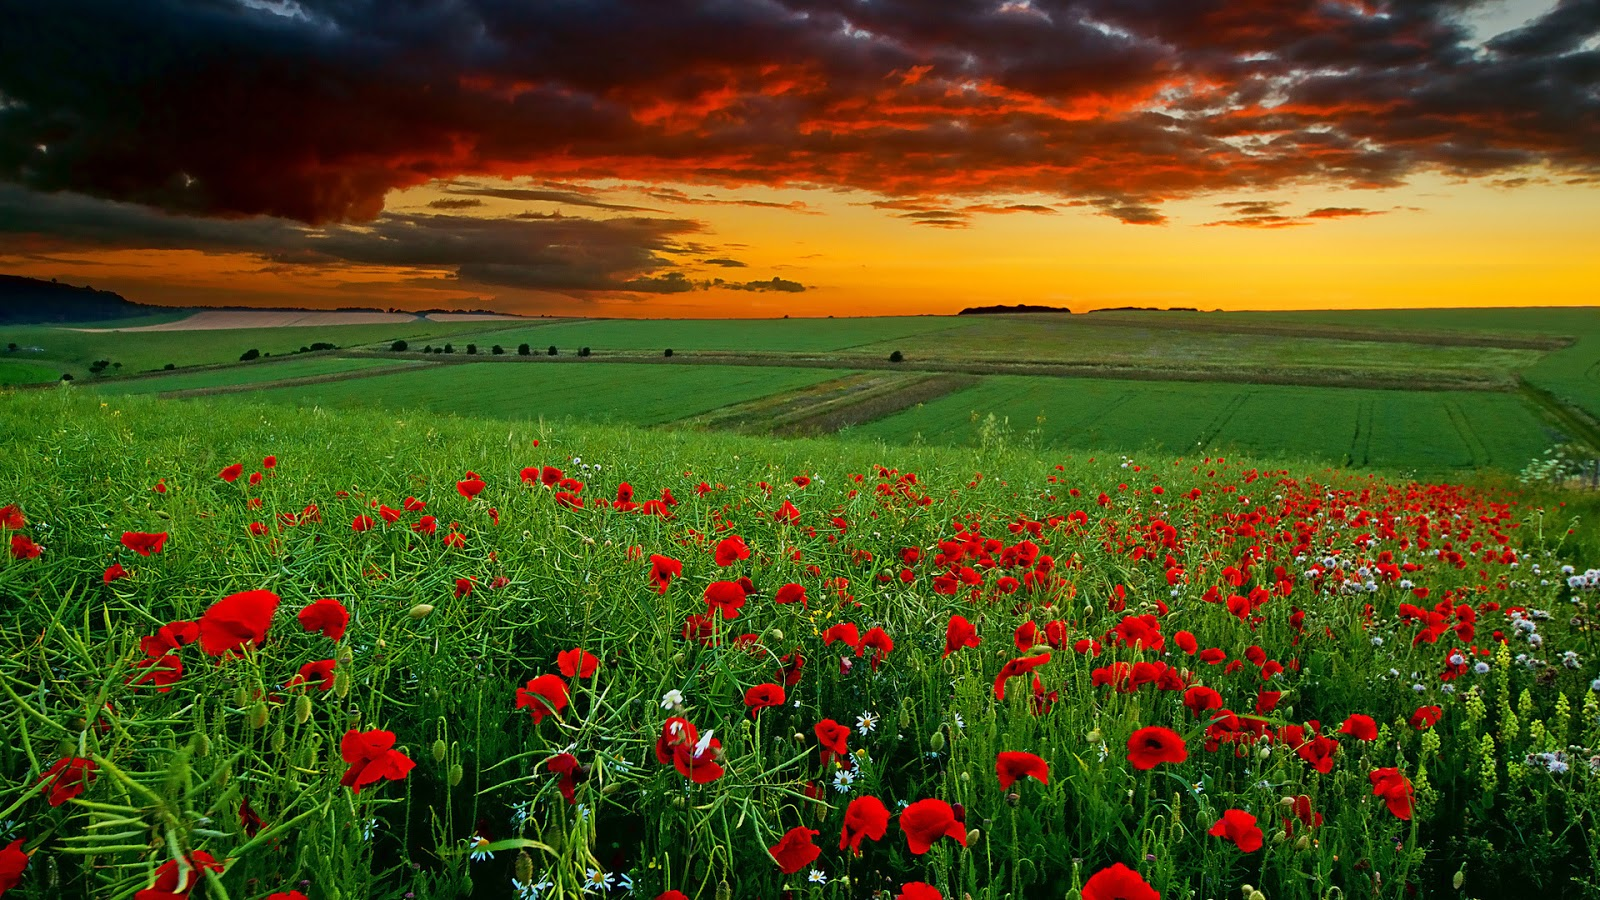 wallpapers world: super landscape of red flowers hd wallpaper